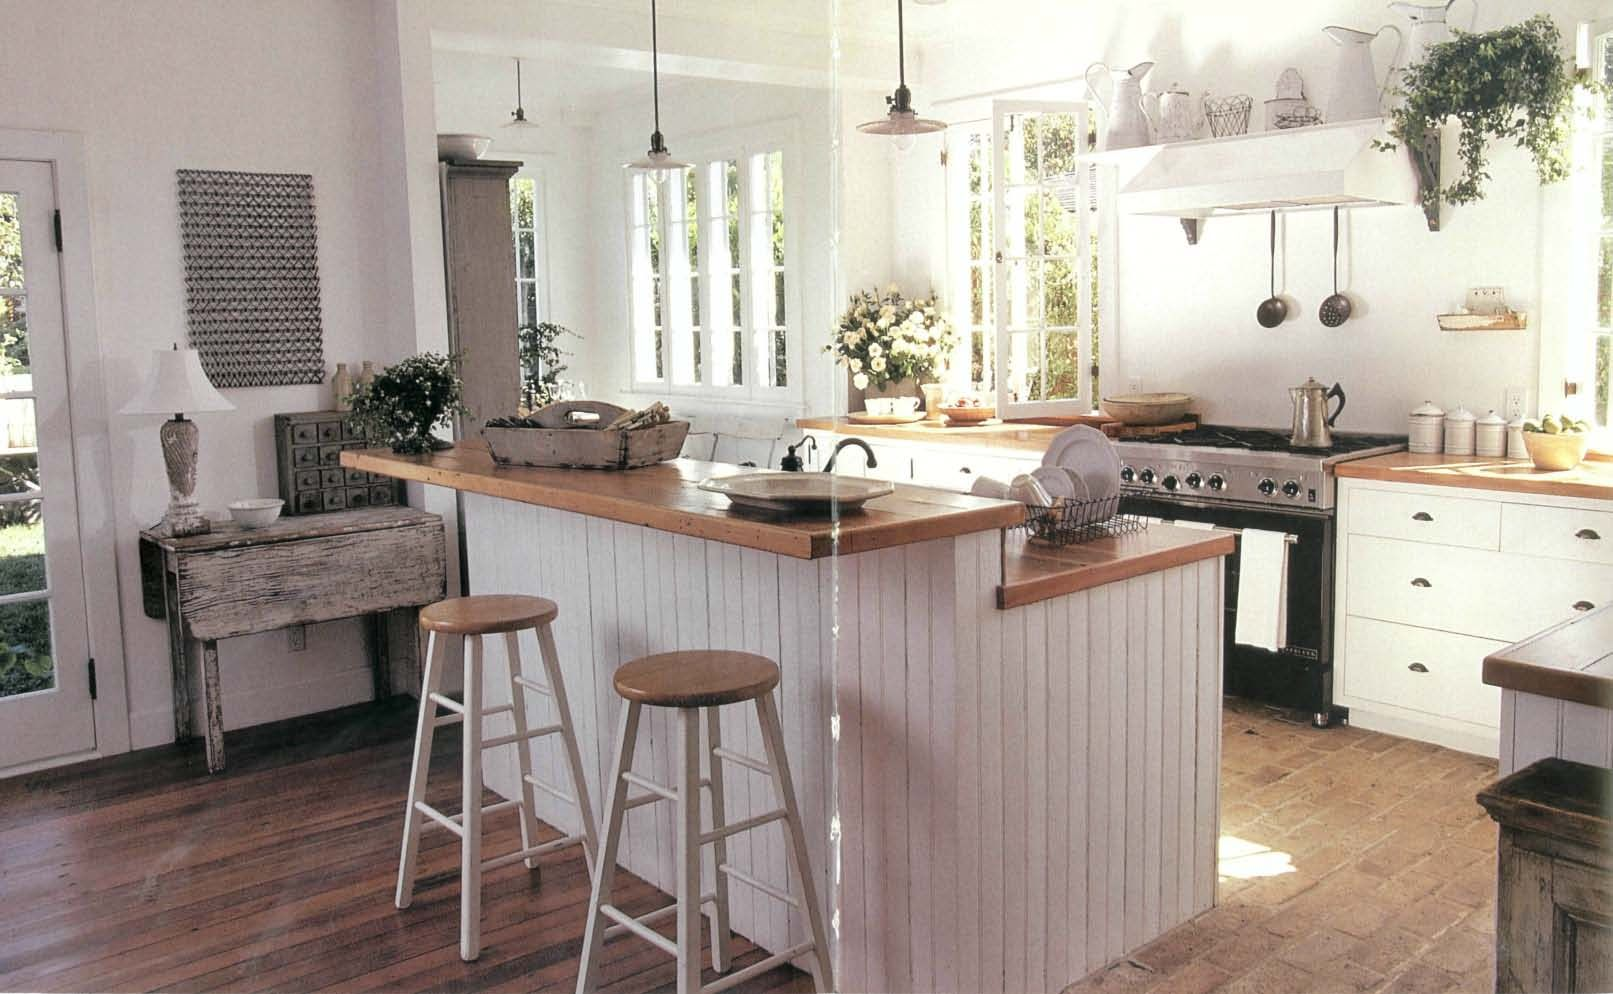 Country Living Kitchens I Have A Thing For Beadboard Home Kitchens Kitchen Renovation Kitchen